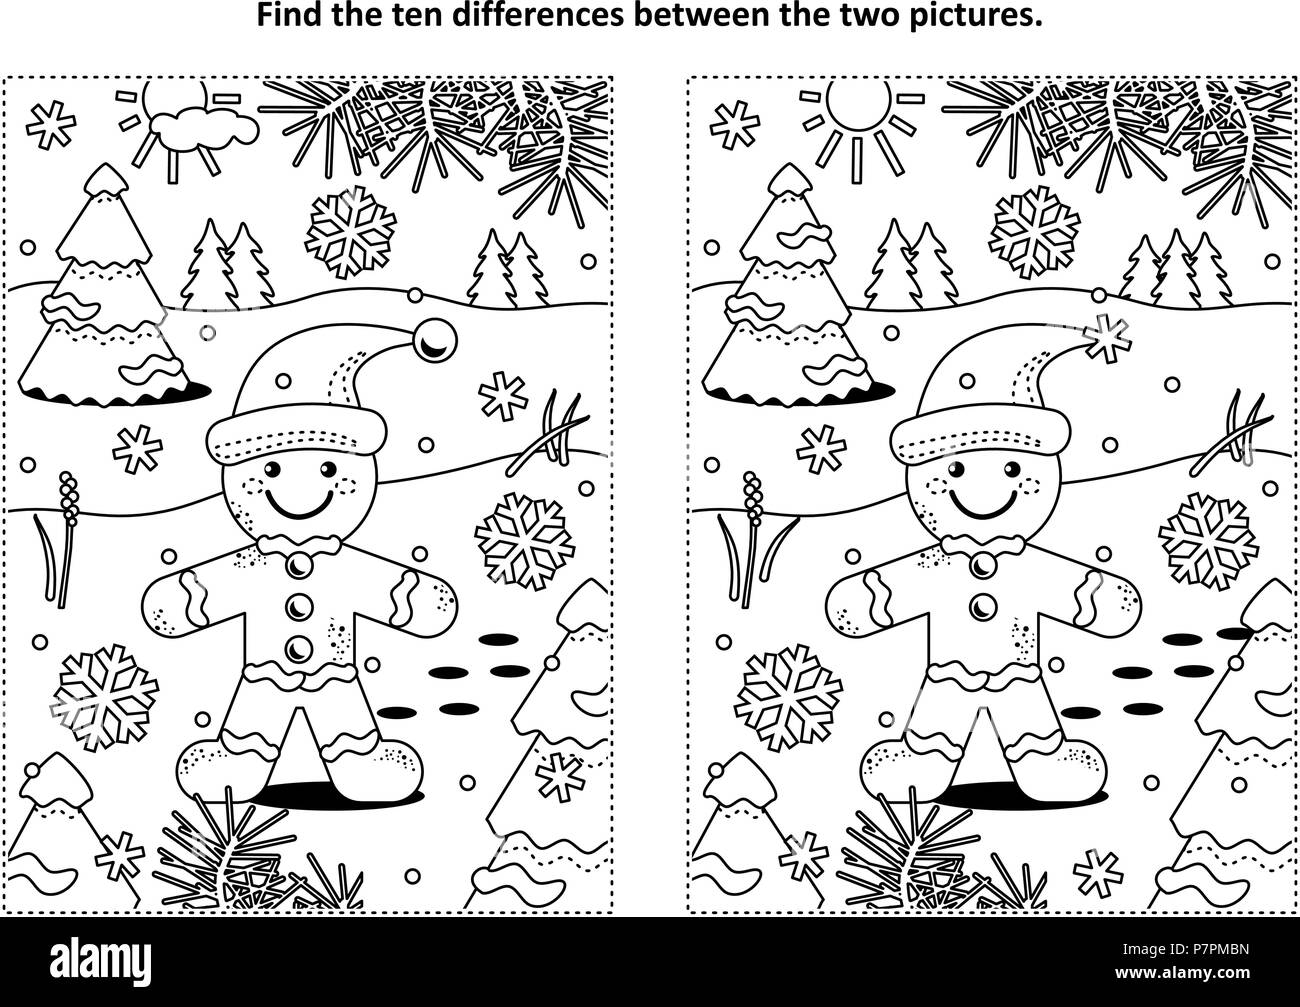 Winter holidays, Christmas or New Year themed find the ten differences picture puzzle and coloring page with ginger man cookie. Stock Vector